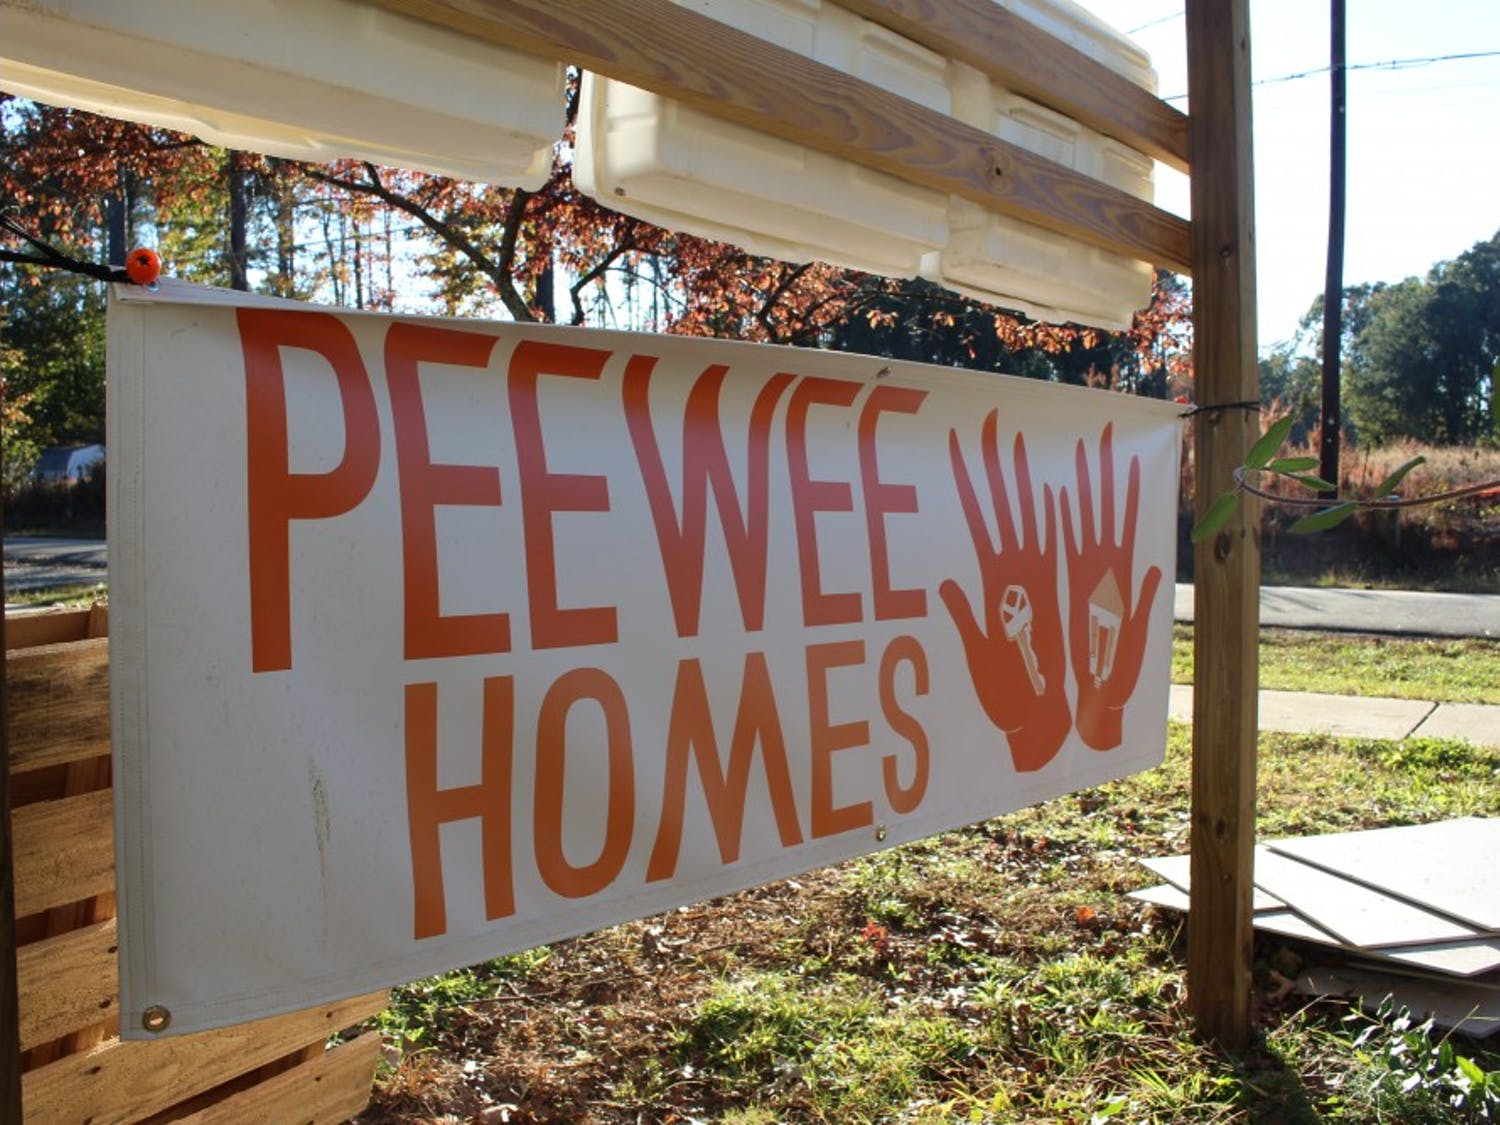 The sign for PeeWee Homes, a collection of tiny homes being developed for low income residents of Chapel Hill at The Episcopal Church of the Advocate on Wednesday, Oct. 24, 2018.